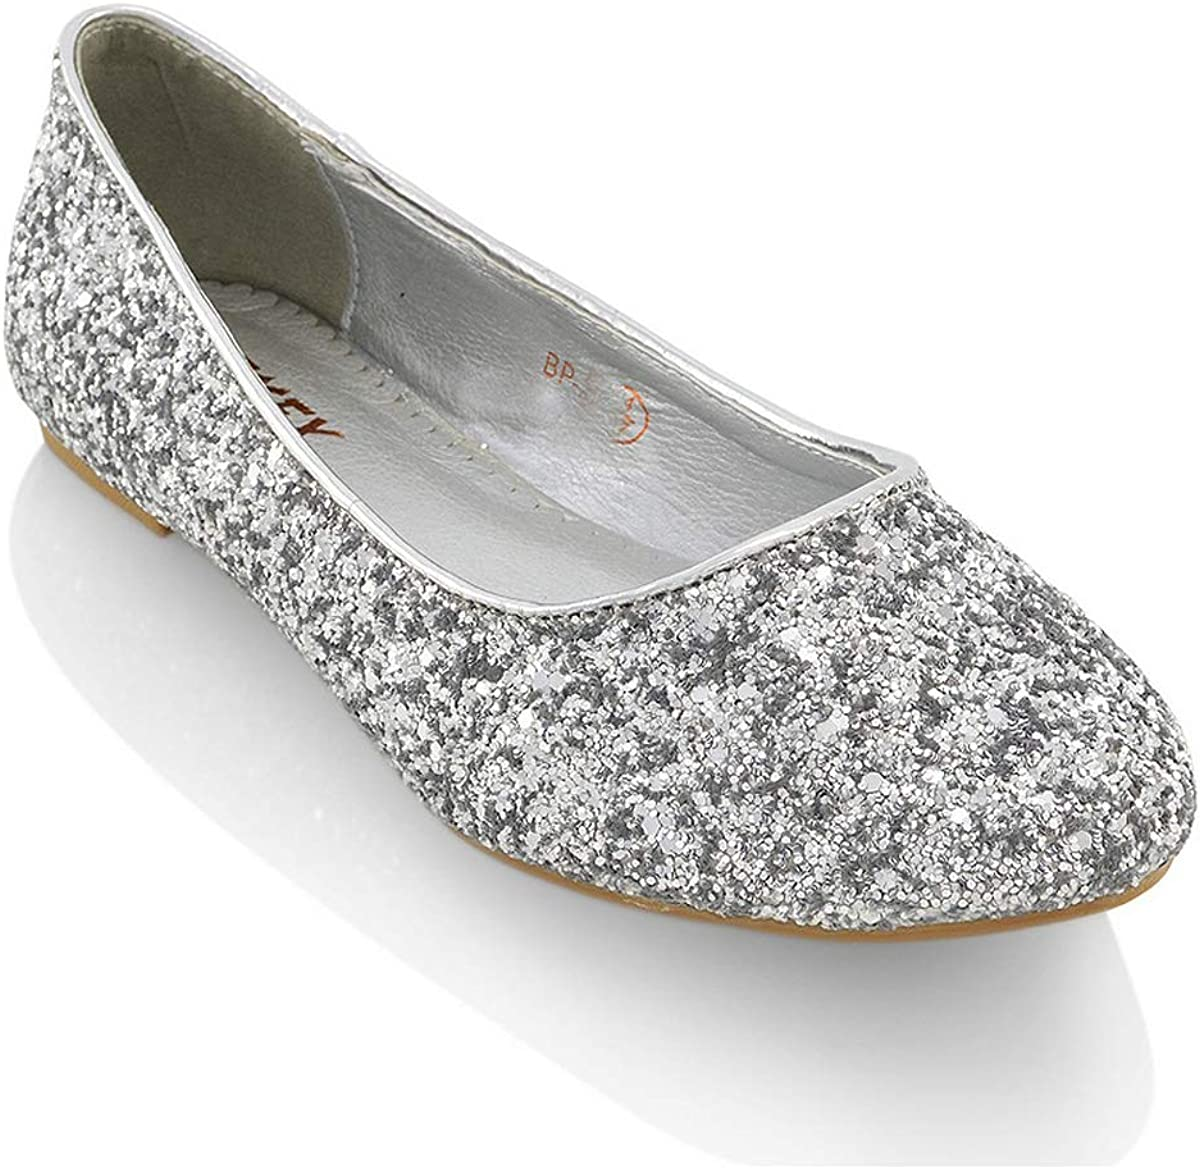 Womens Ladies Flat Ballet Glitter Bridal Bridesmaid Prom Dolly Sparkly Pumps Slip On Shoes Size 3-9